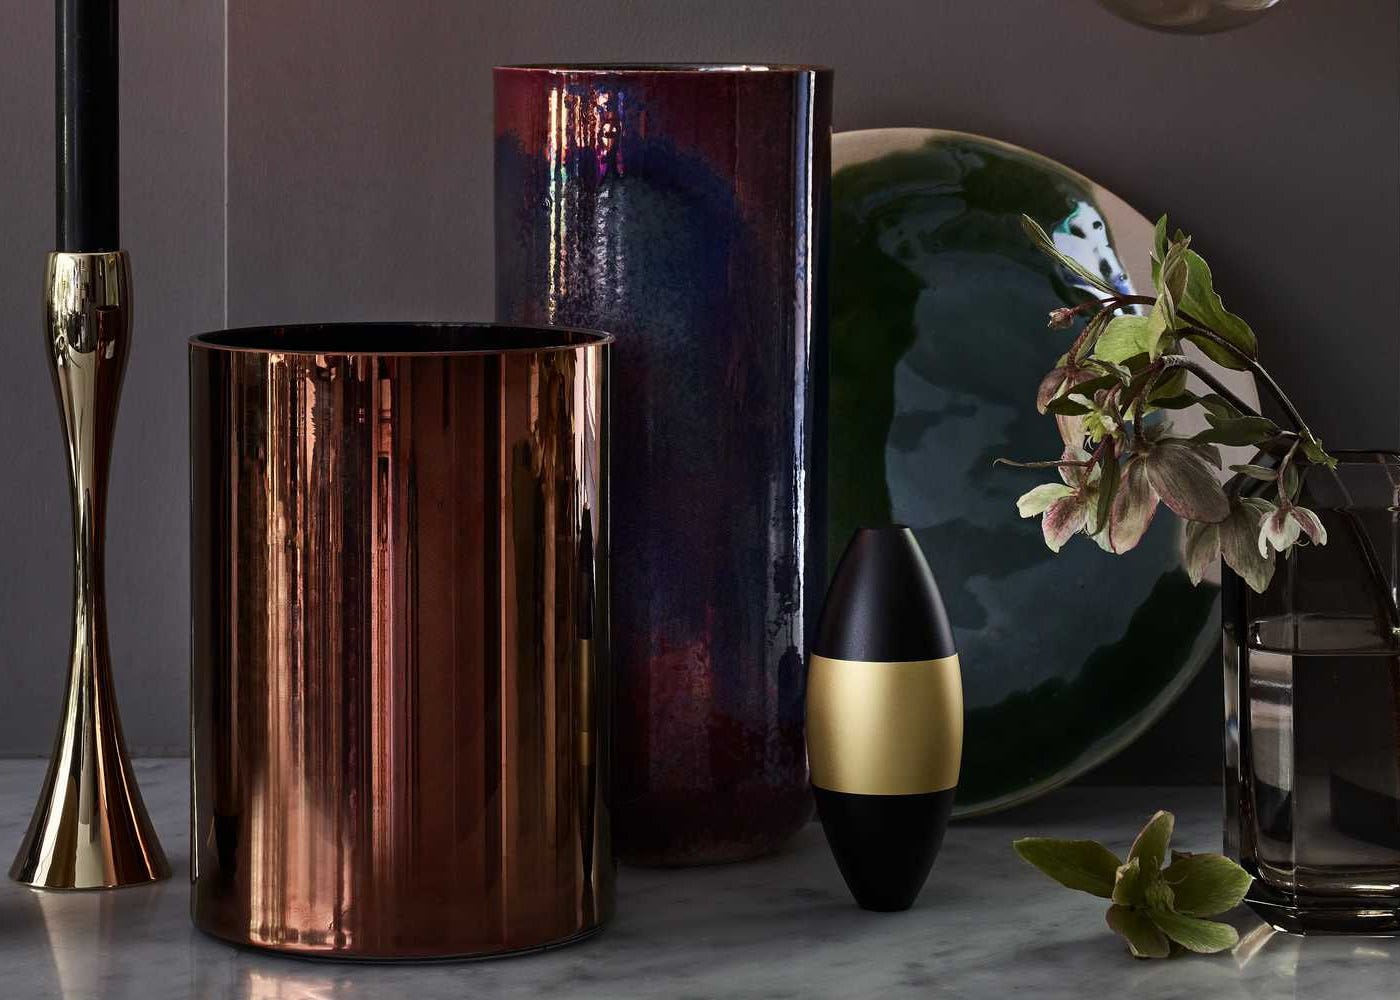 Glass Column Vase Copper Small with Reflection Candlestick and Tube Vase Damson Bronze Lustre